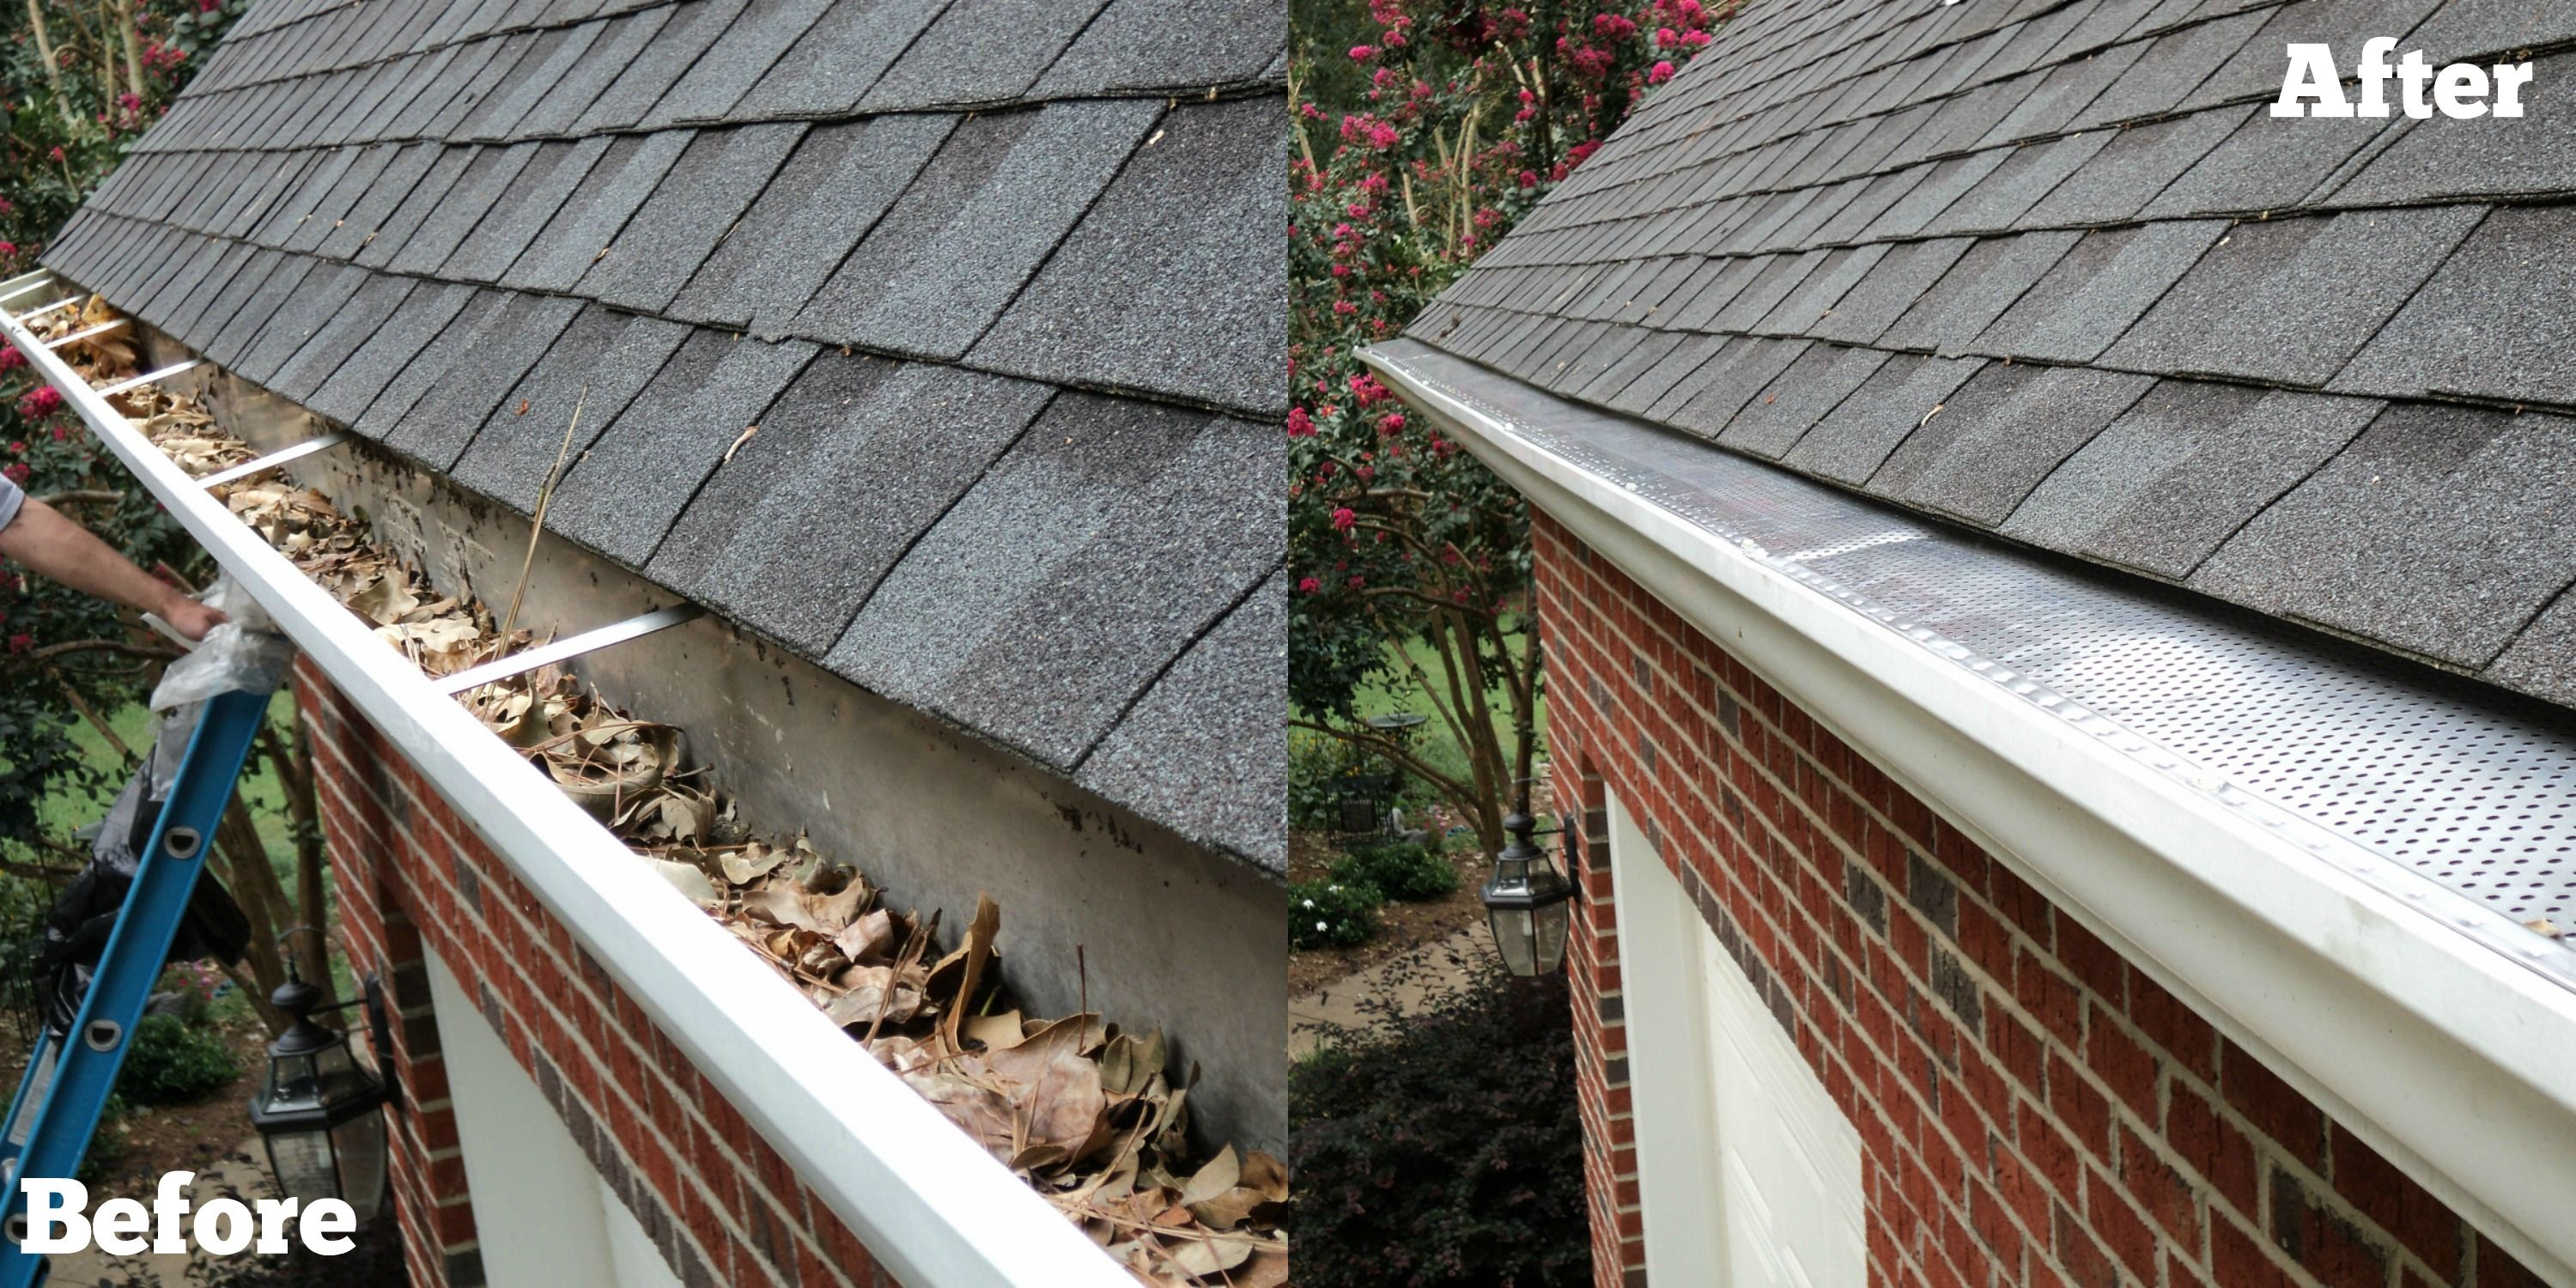 Before And After Gutter Cleaning And Gutter Guard Installation